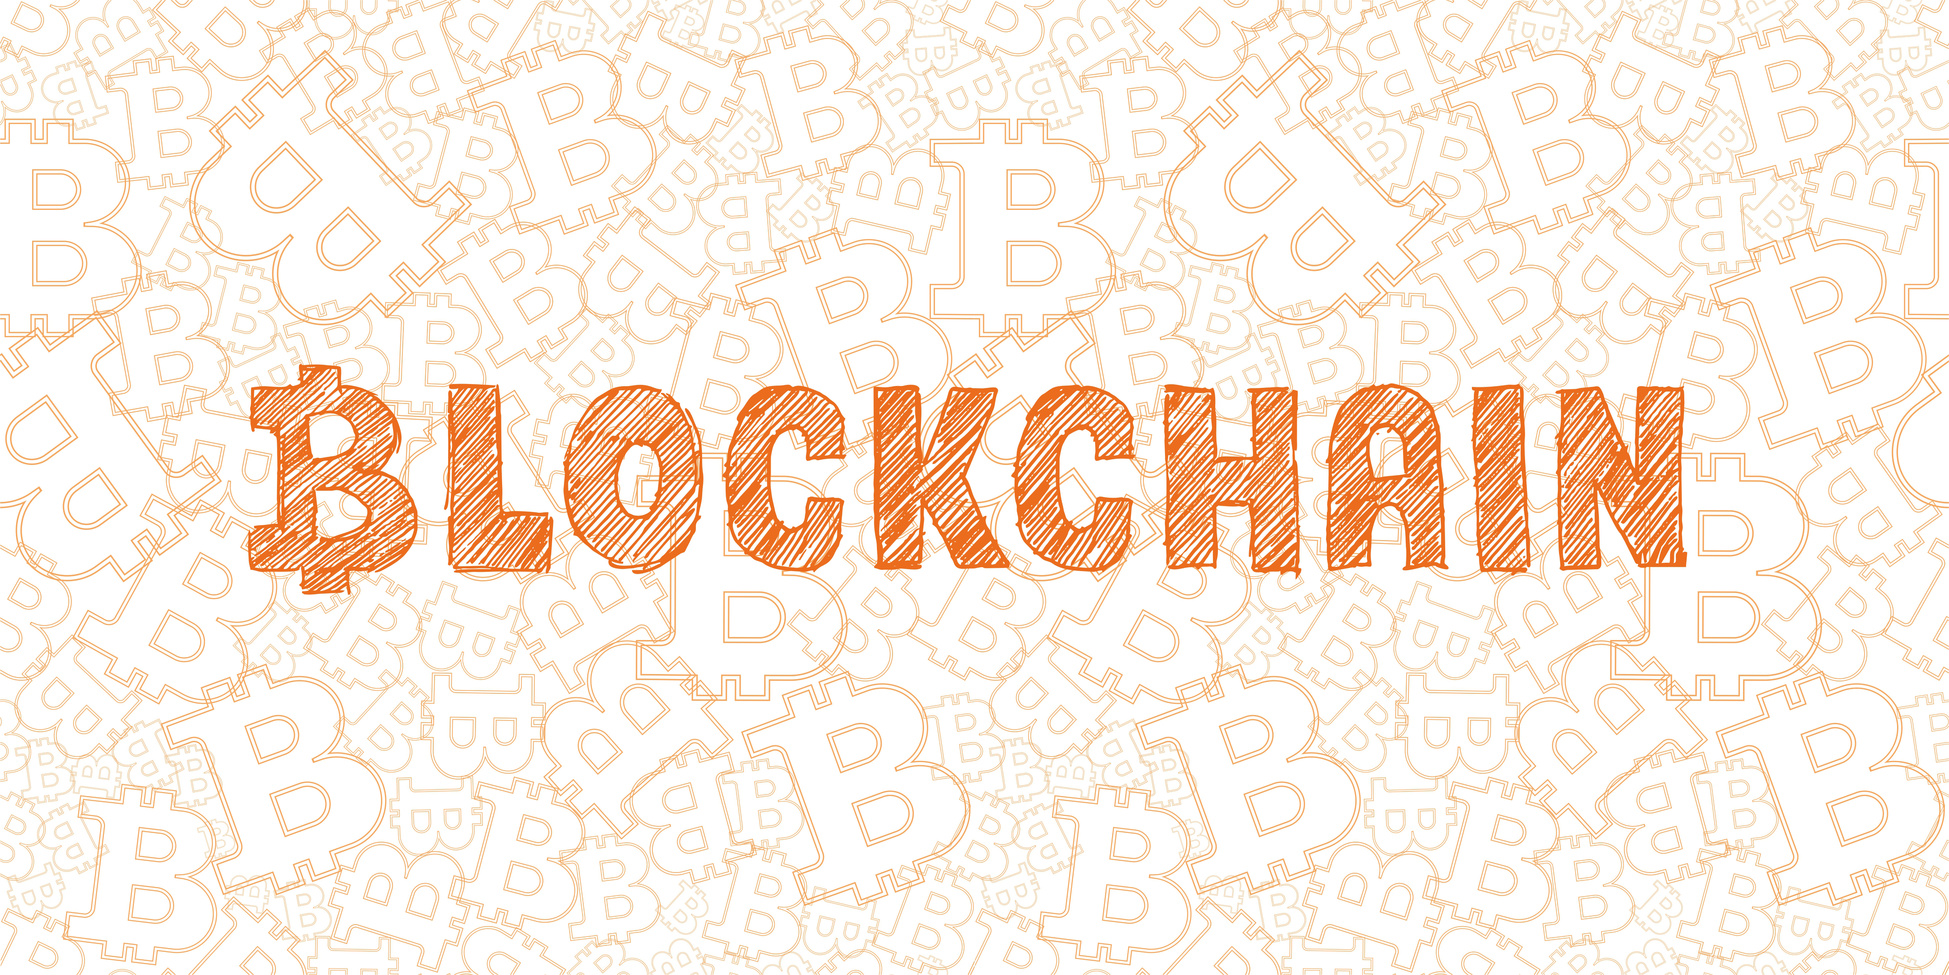 Aha! Blockchain... we meet again (and again and again)